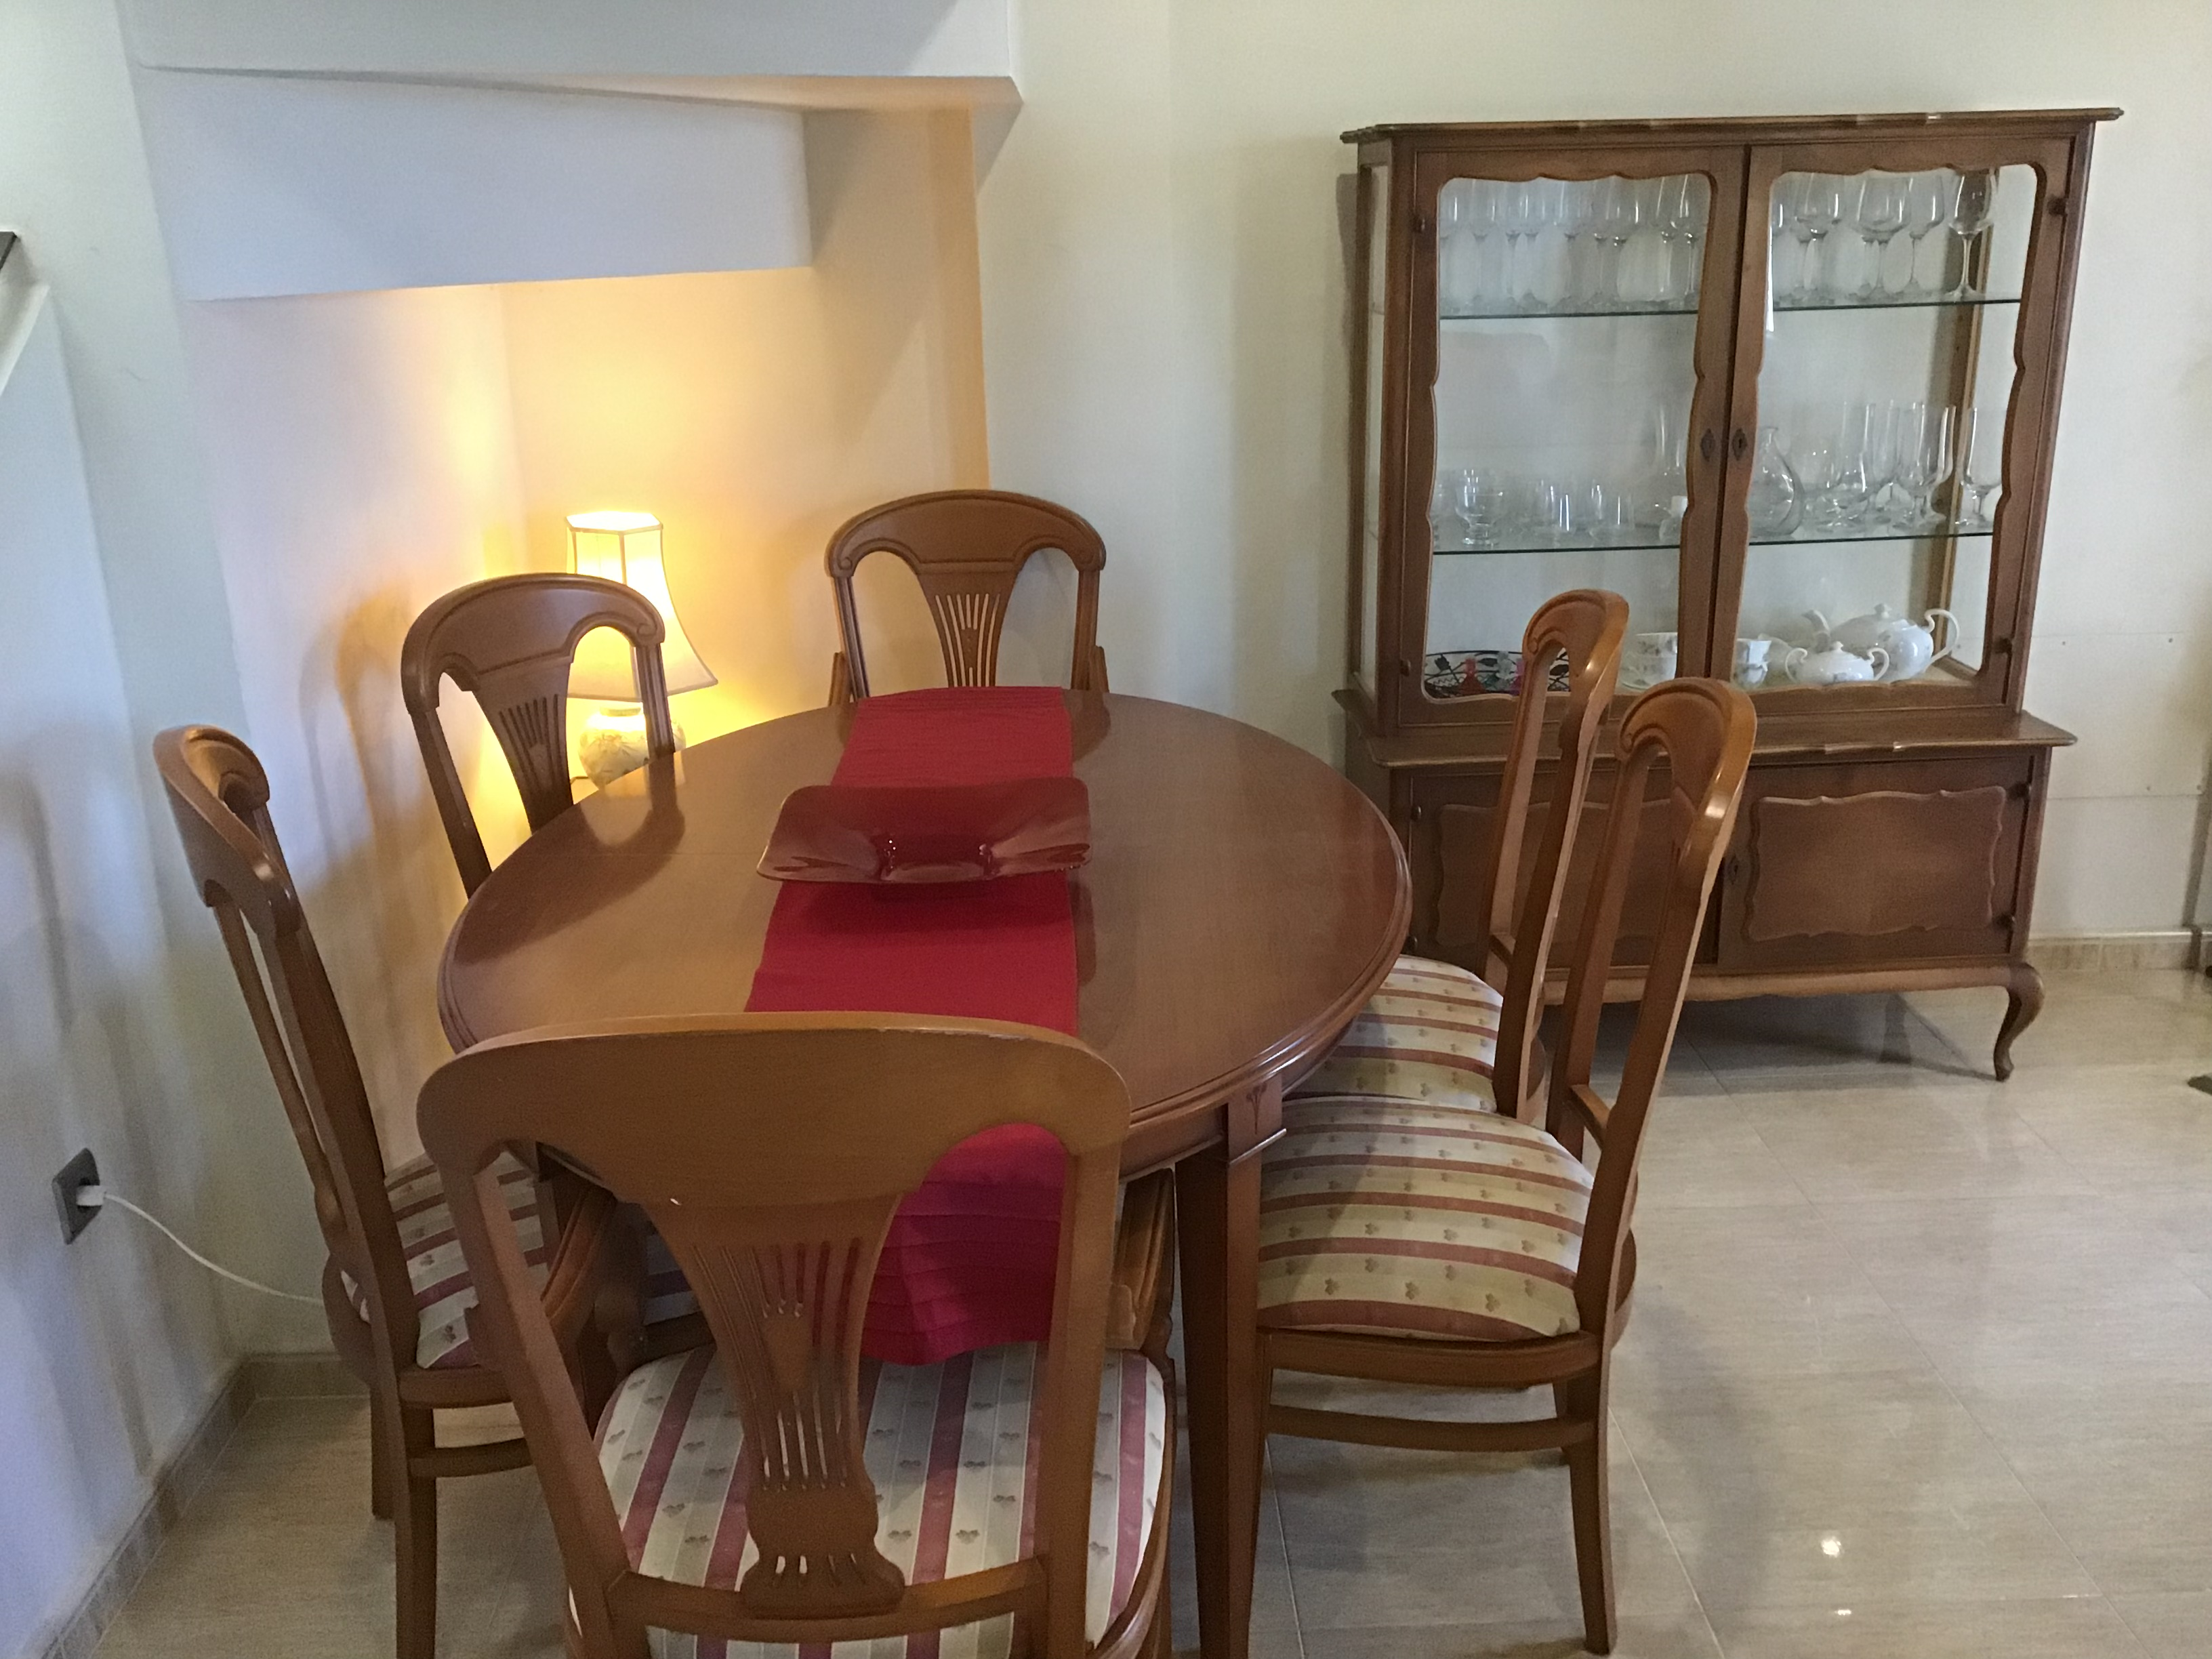 For sale: Dining Table, Chairs and Cabinet